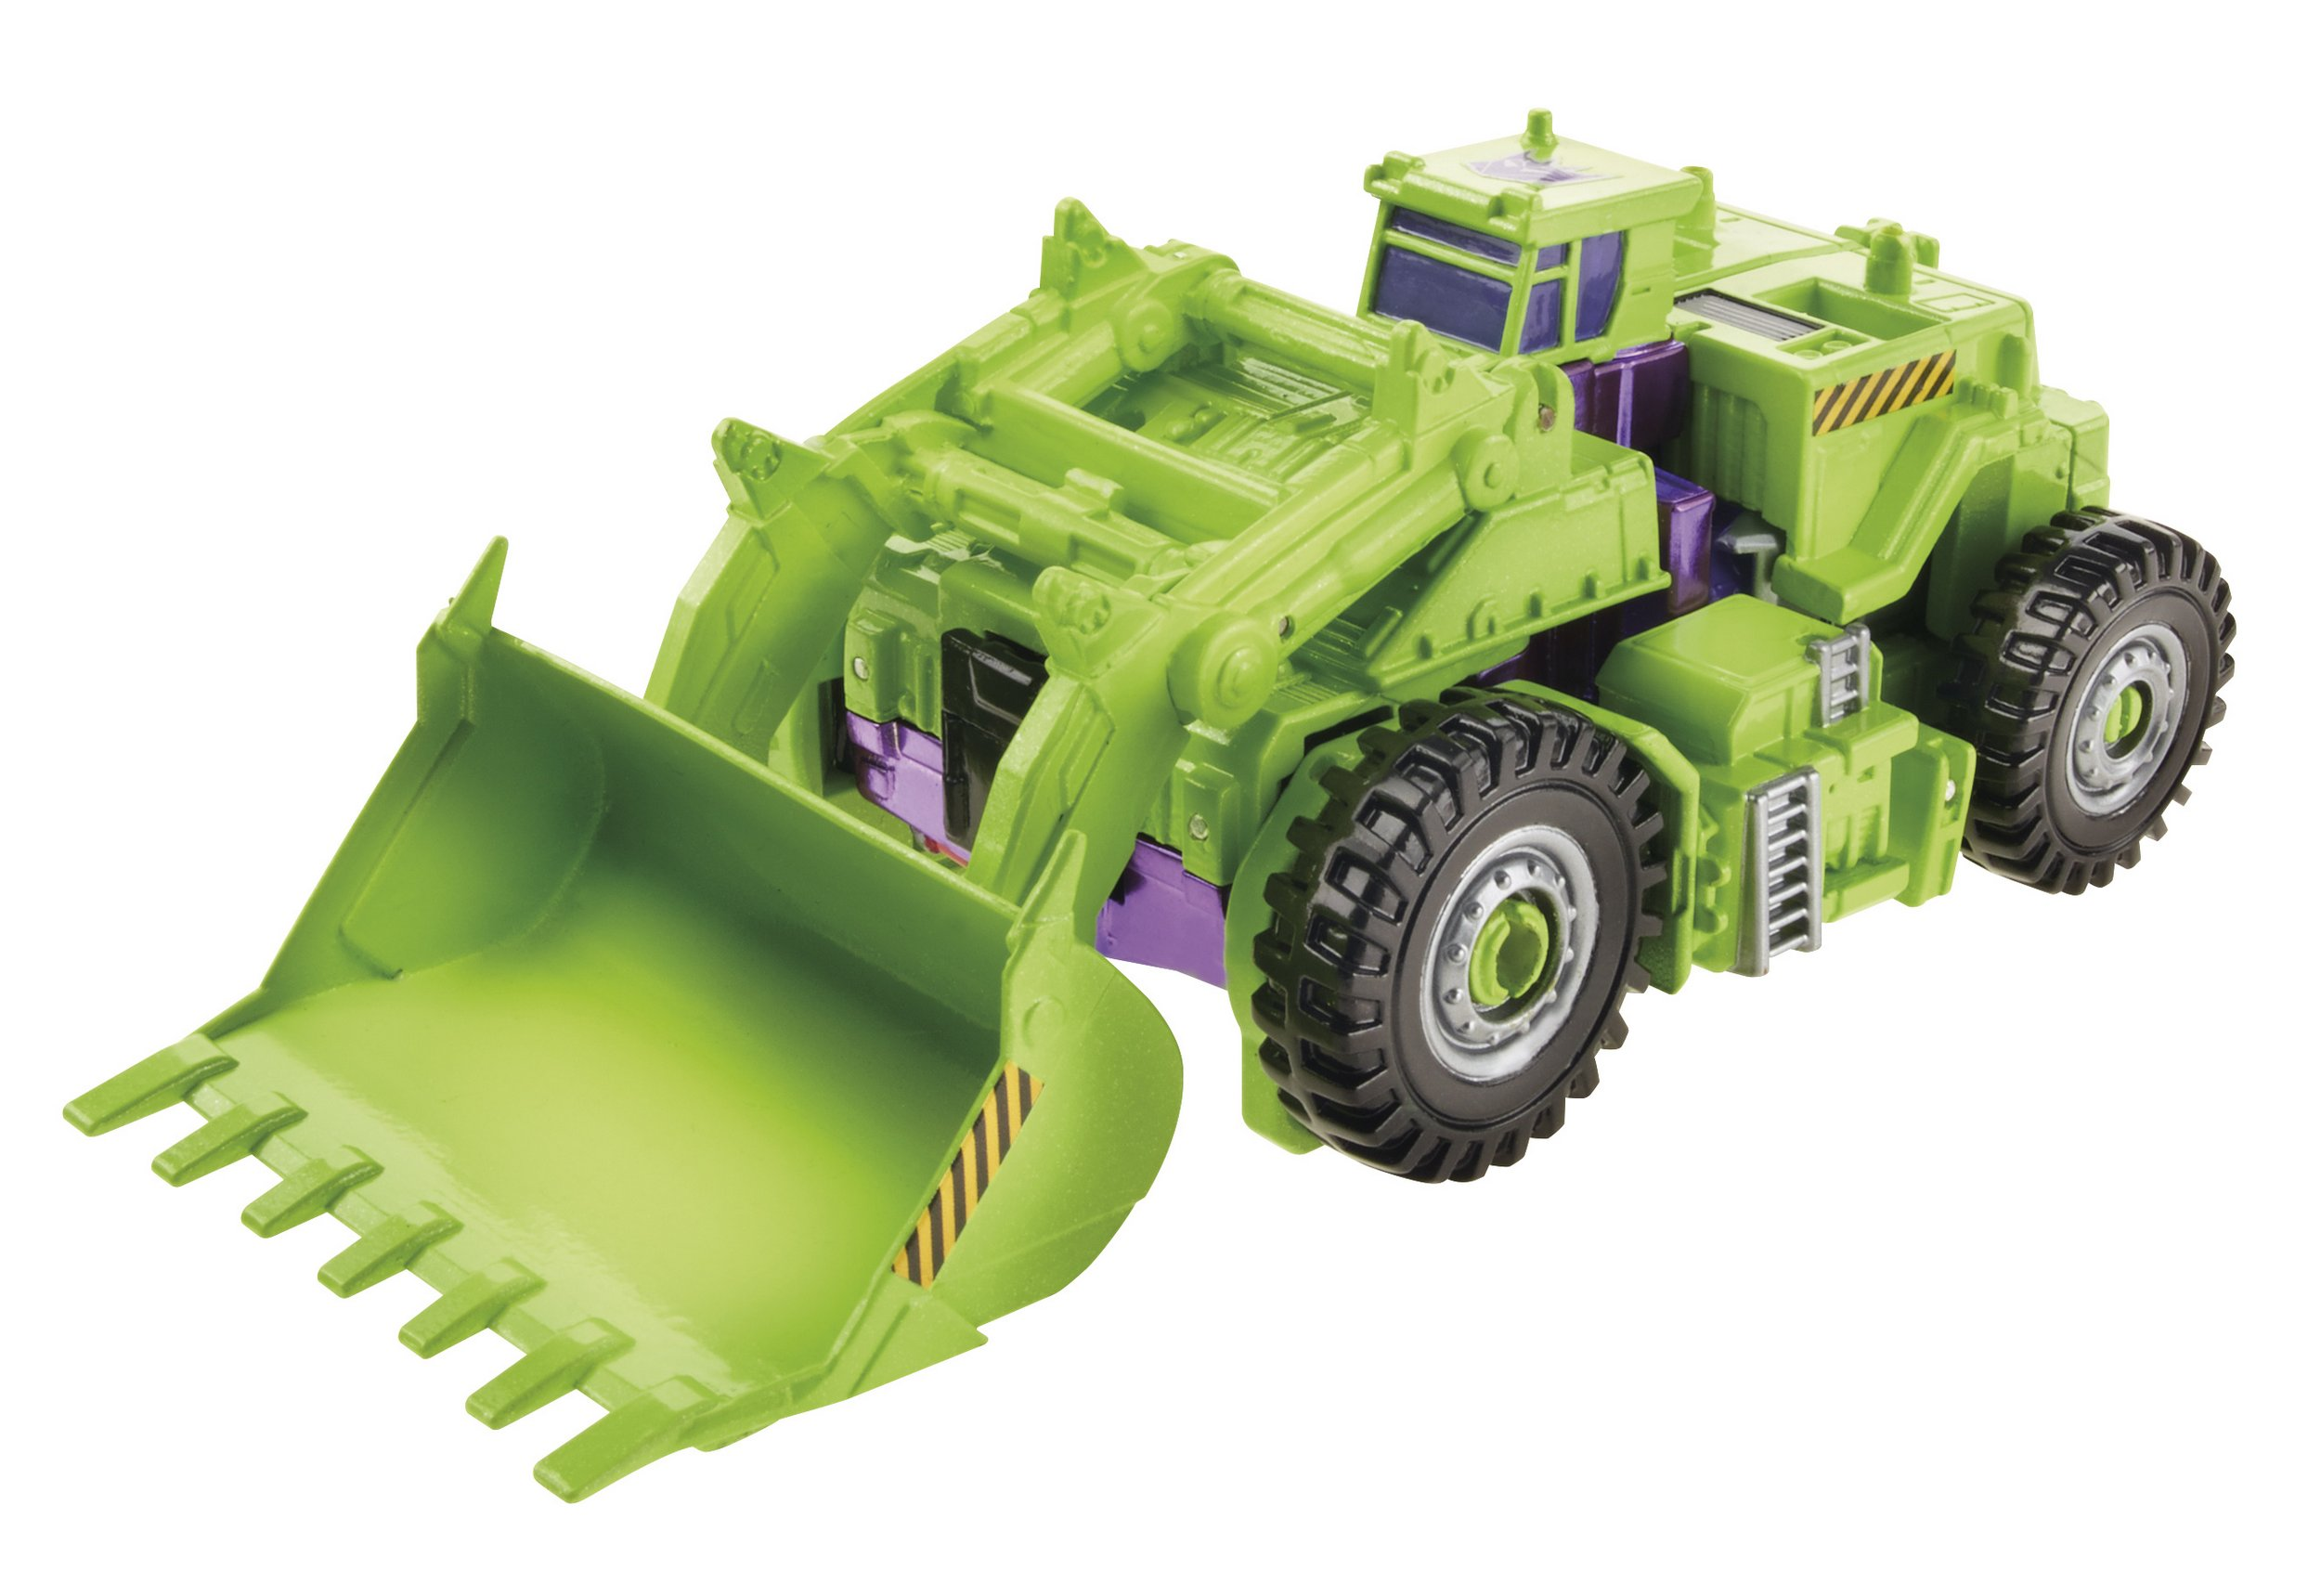 Constructicon-Scrapper-Vehicle_1434047846.jpg